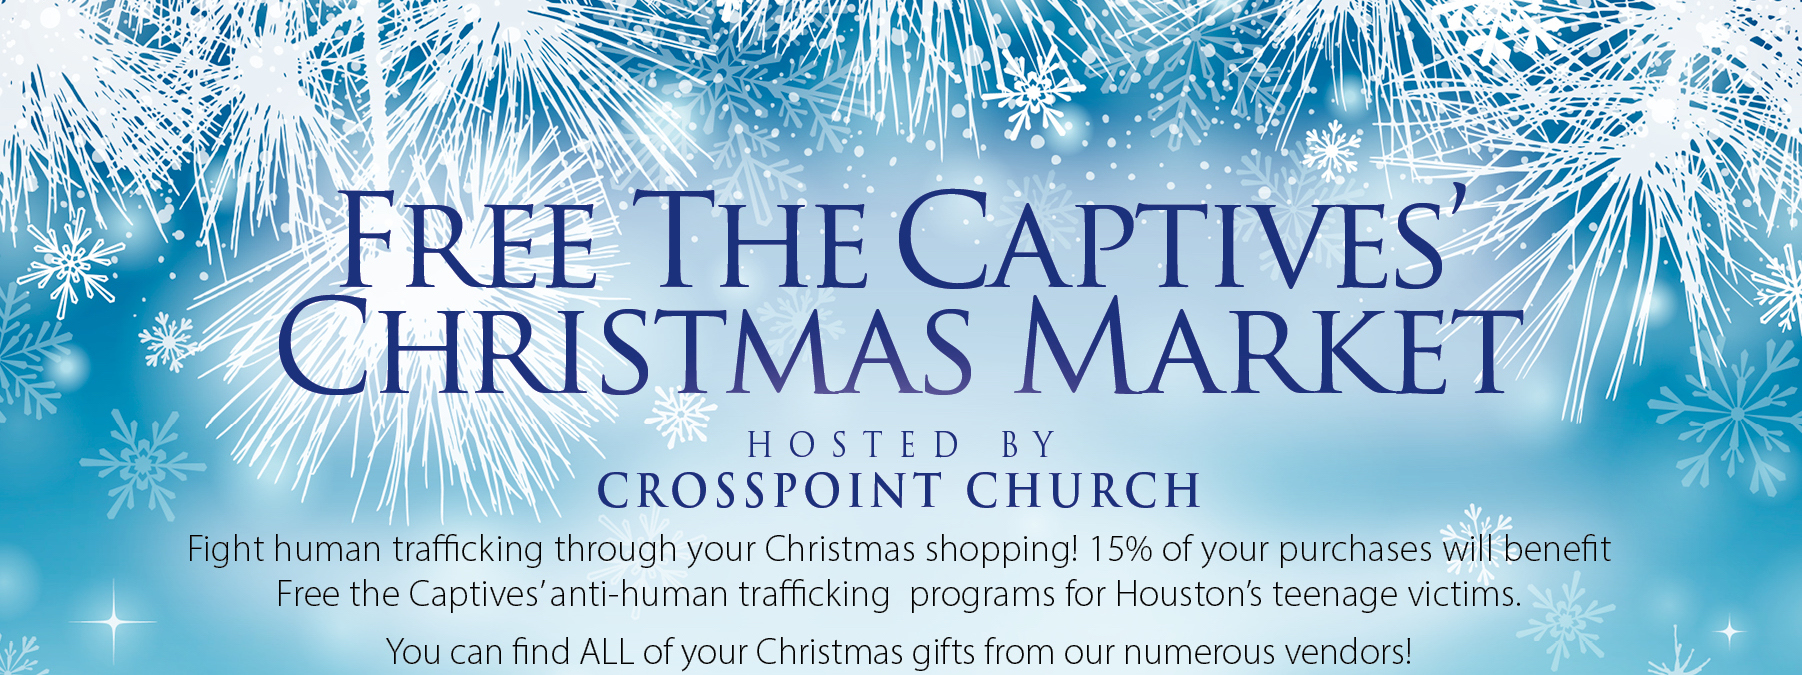 free the captives is hosting its 6th annual christmas market november 30 december 1 2018 at crosspoint church 15 of your total purchase will benefit